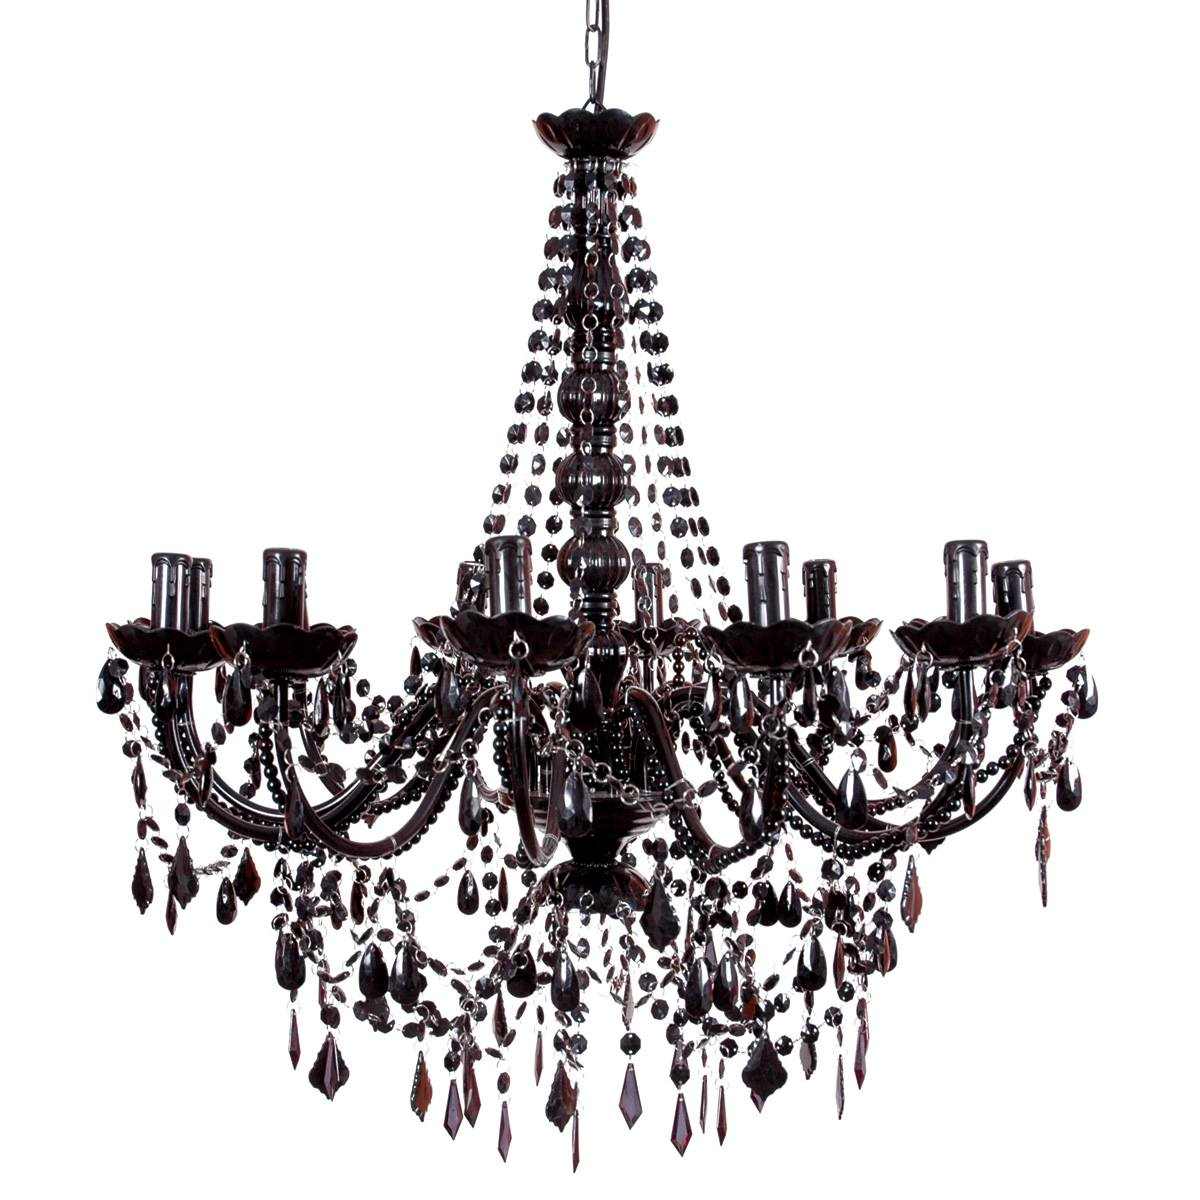 chandeliers on pinterest chandeliers black chandelier